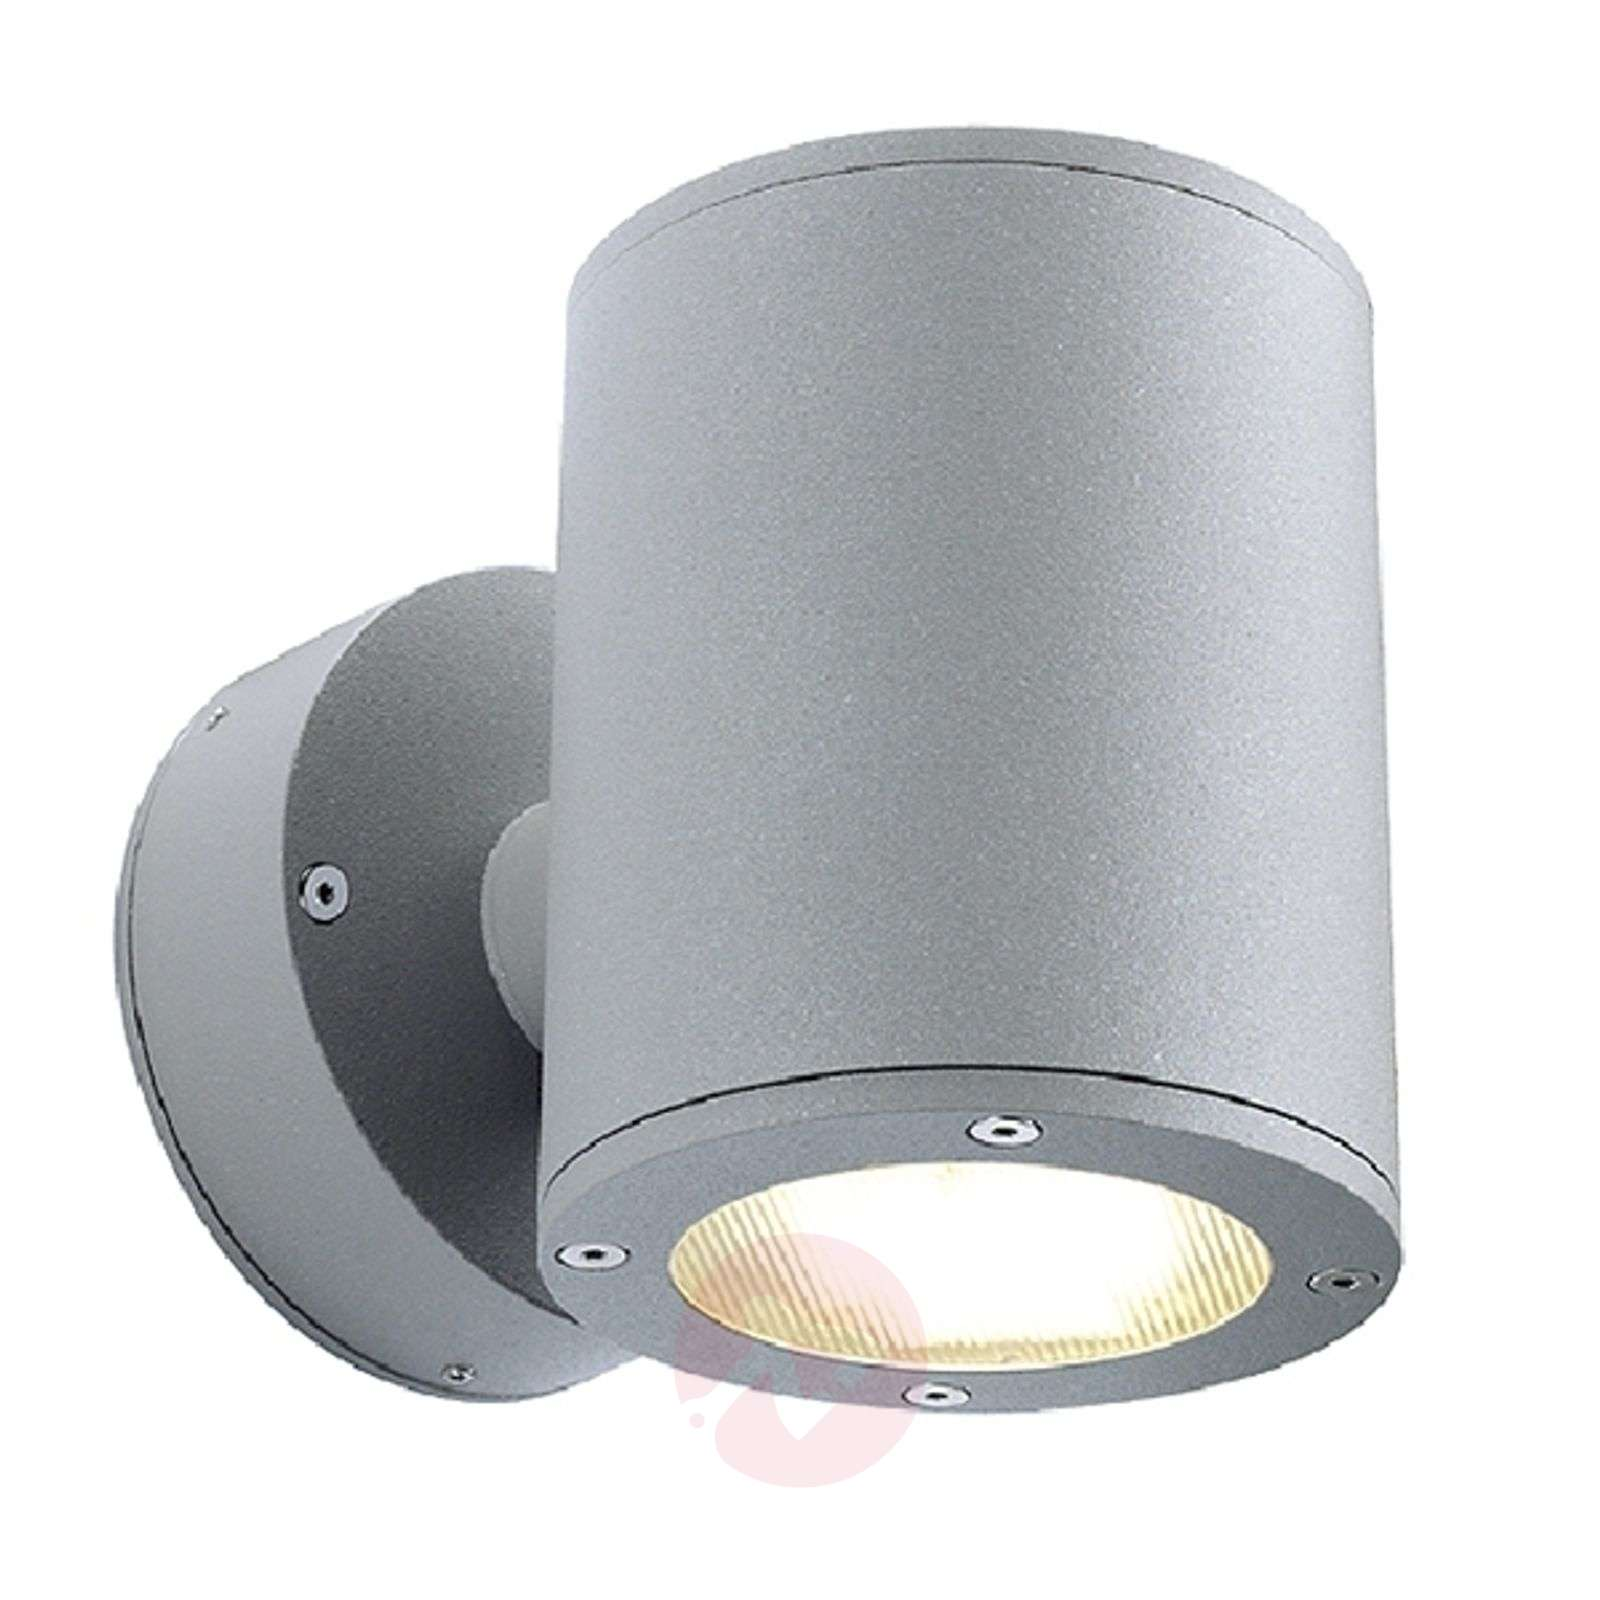 sitra-wall-up-down-exterior-wall-lamp-5504336x-31 Faszinierend Up Down Lampe Dekorationen